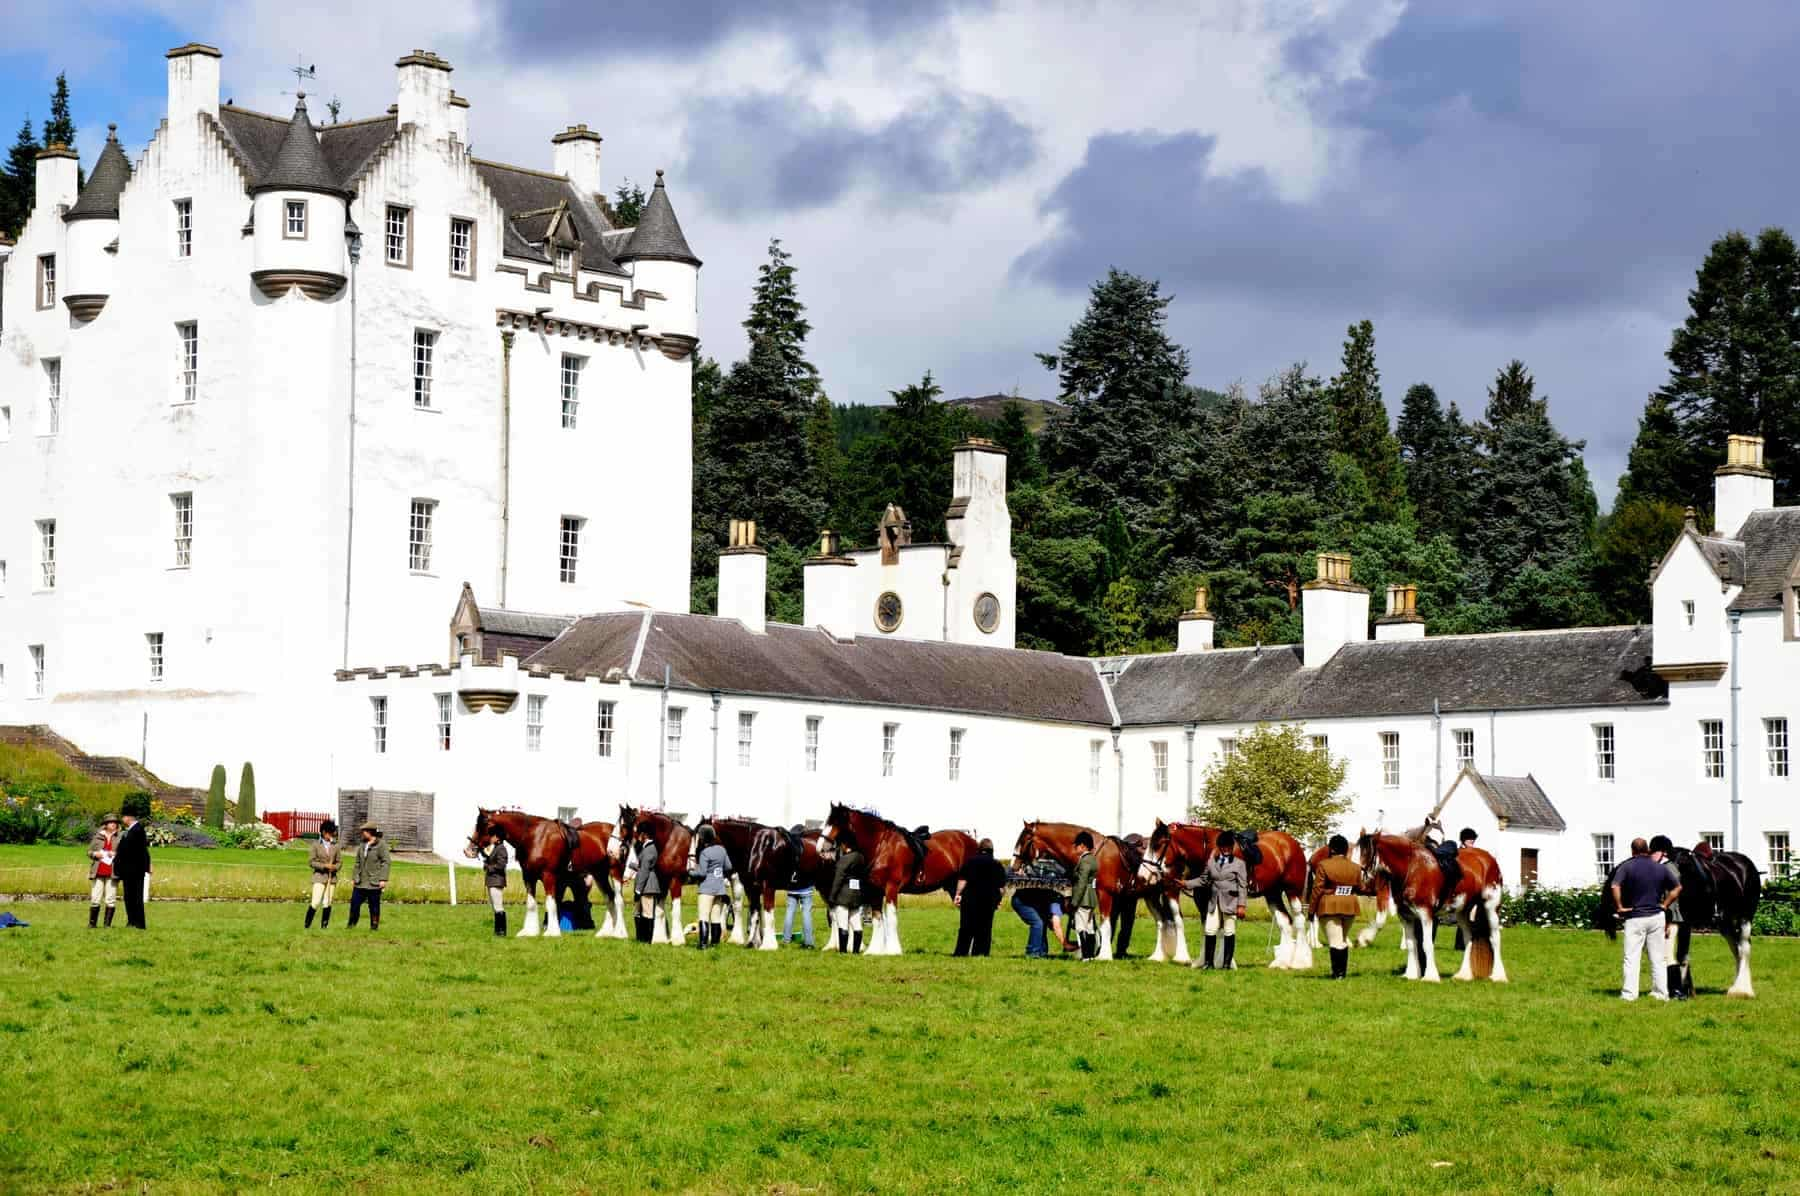 In August, Blair Castle in Scotland hosts a country fair with horse trials.